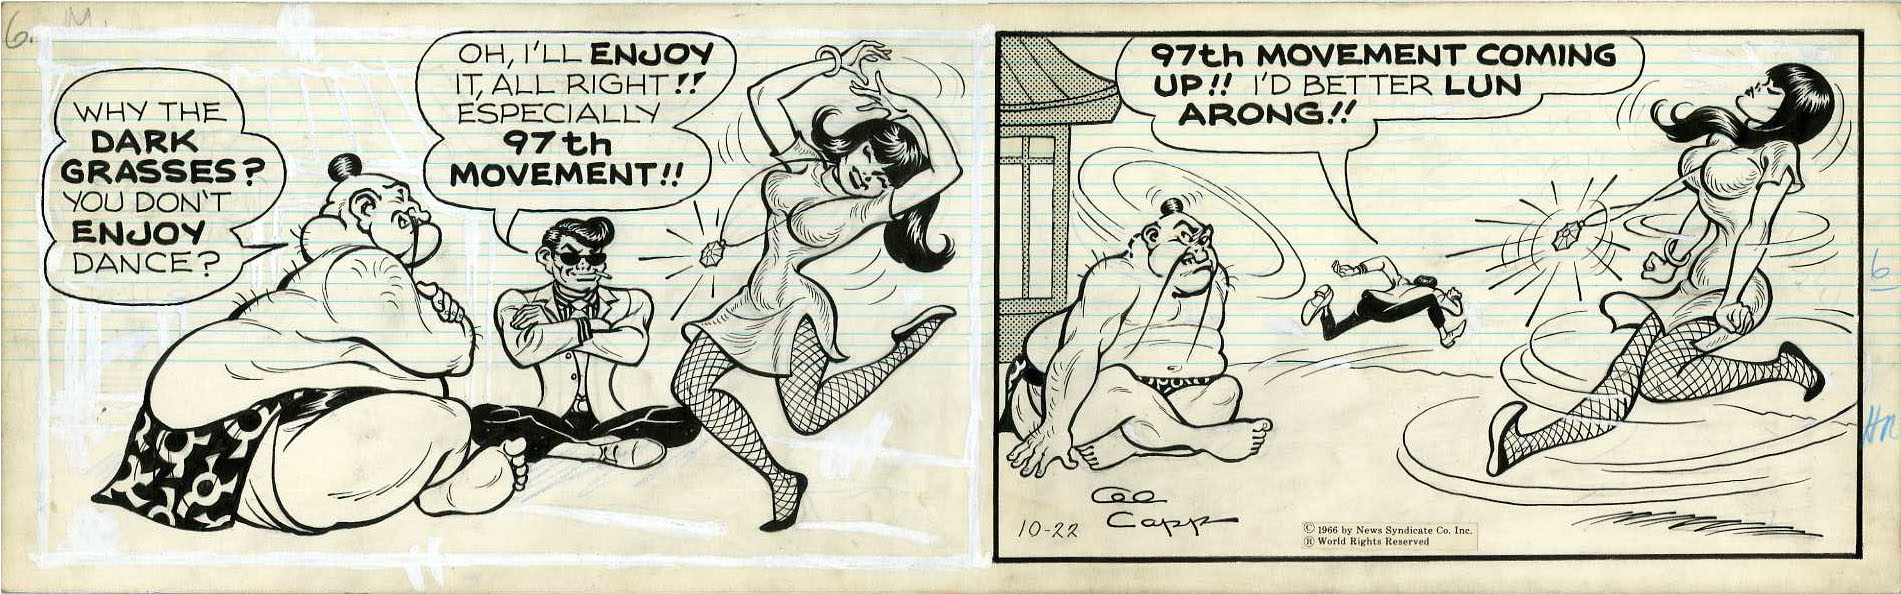 AL CAPP - LI'L ABNER DAILY COMIC STRIP DATED 10-22-66 / LI'L ABNAI YOKUMOTO